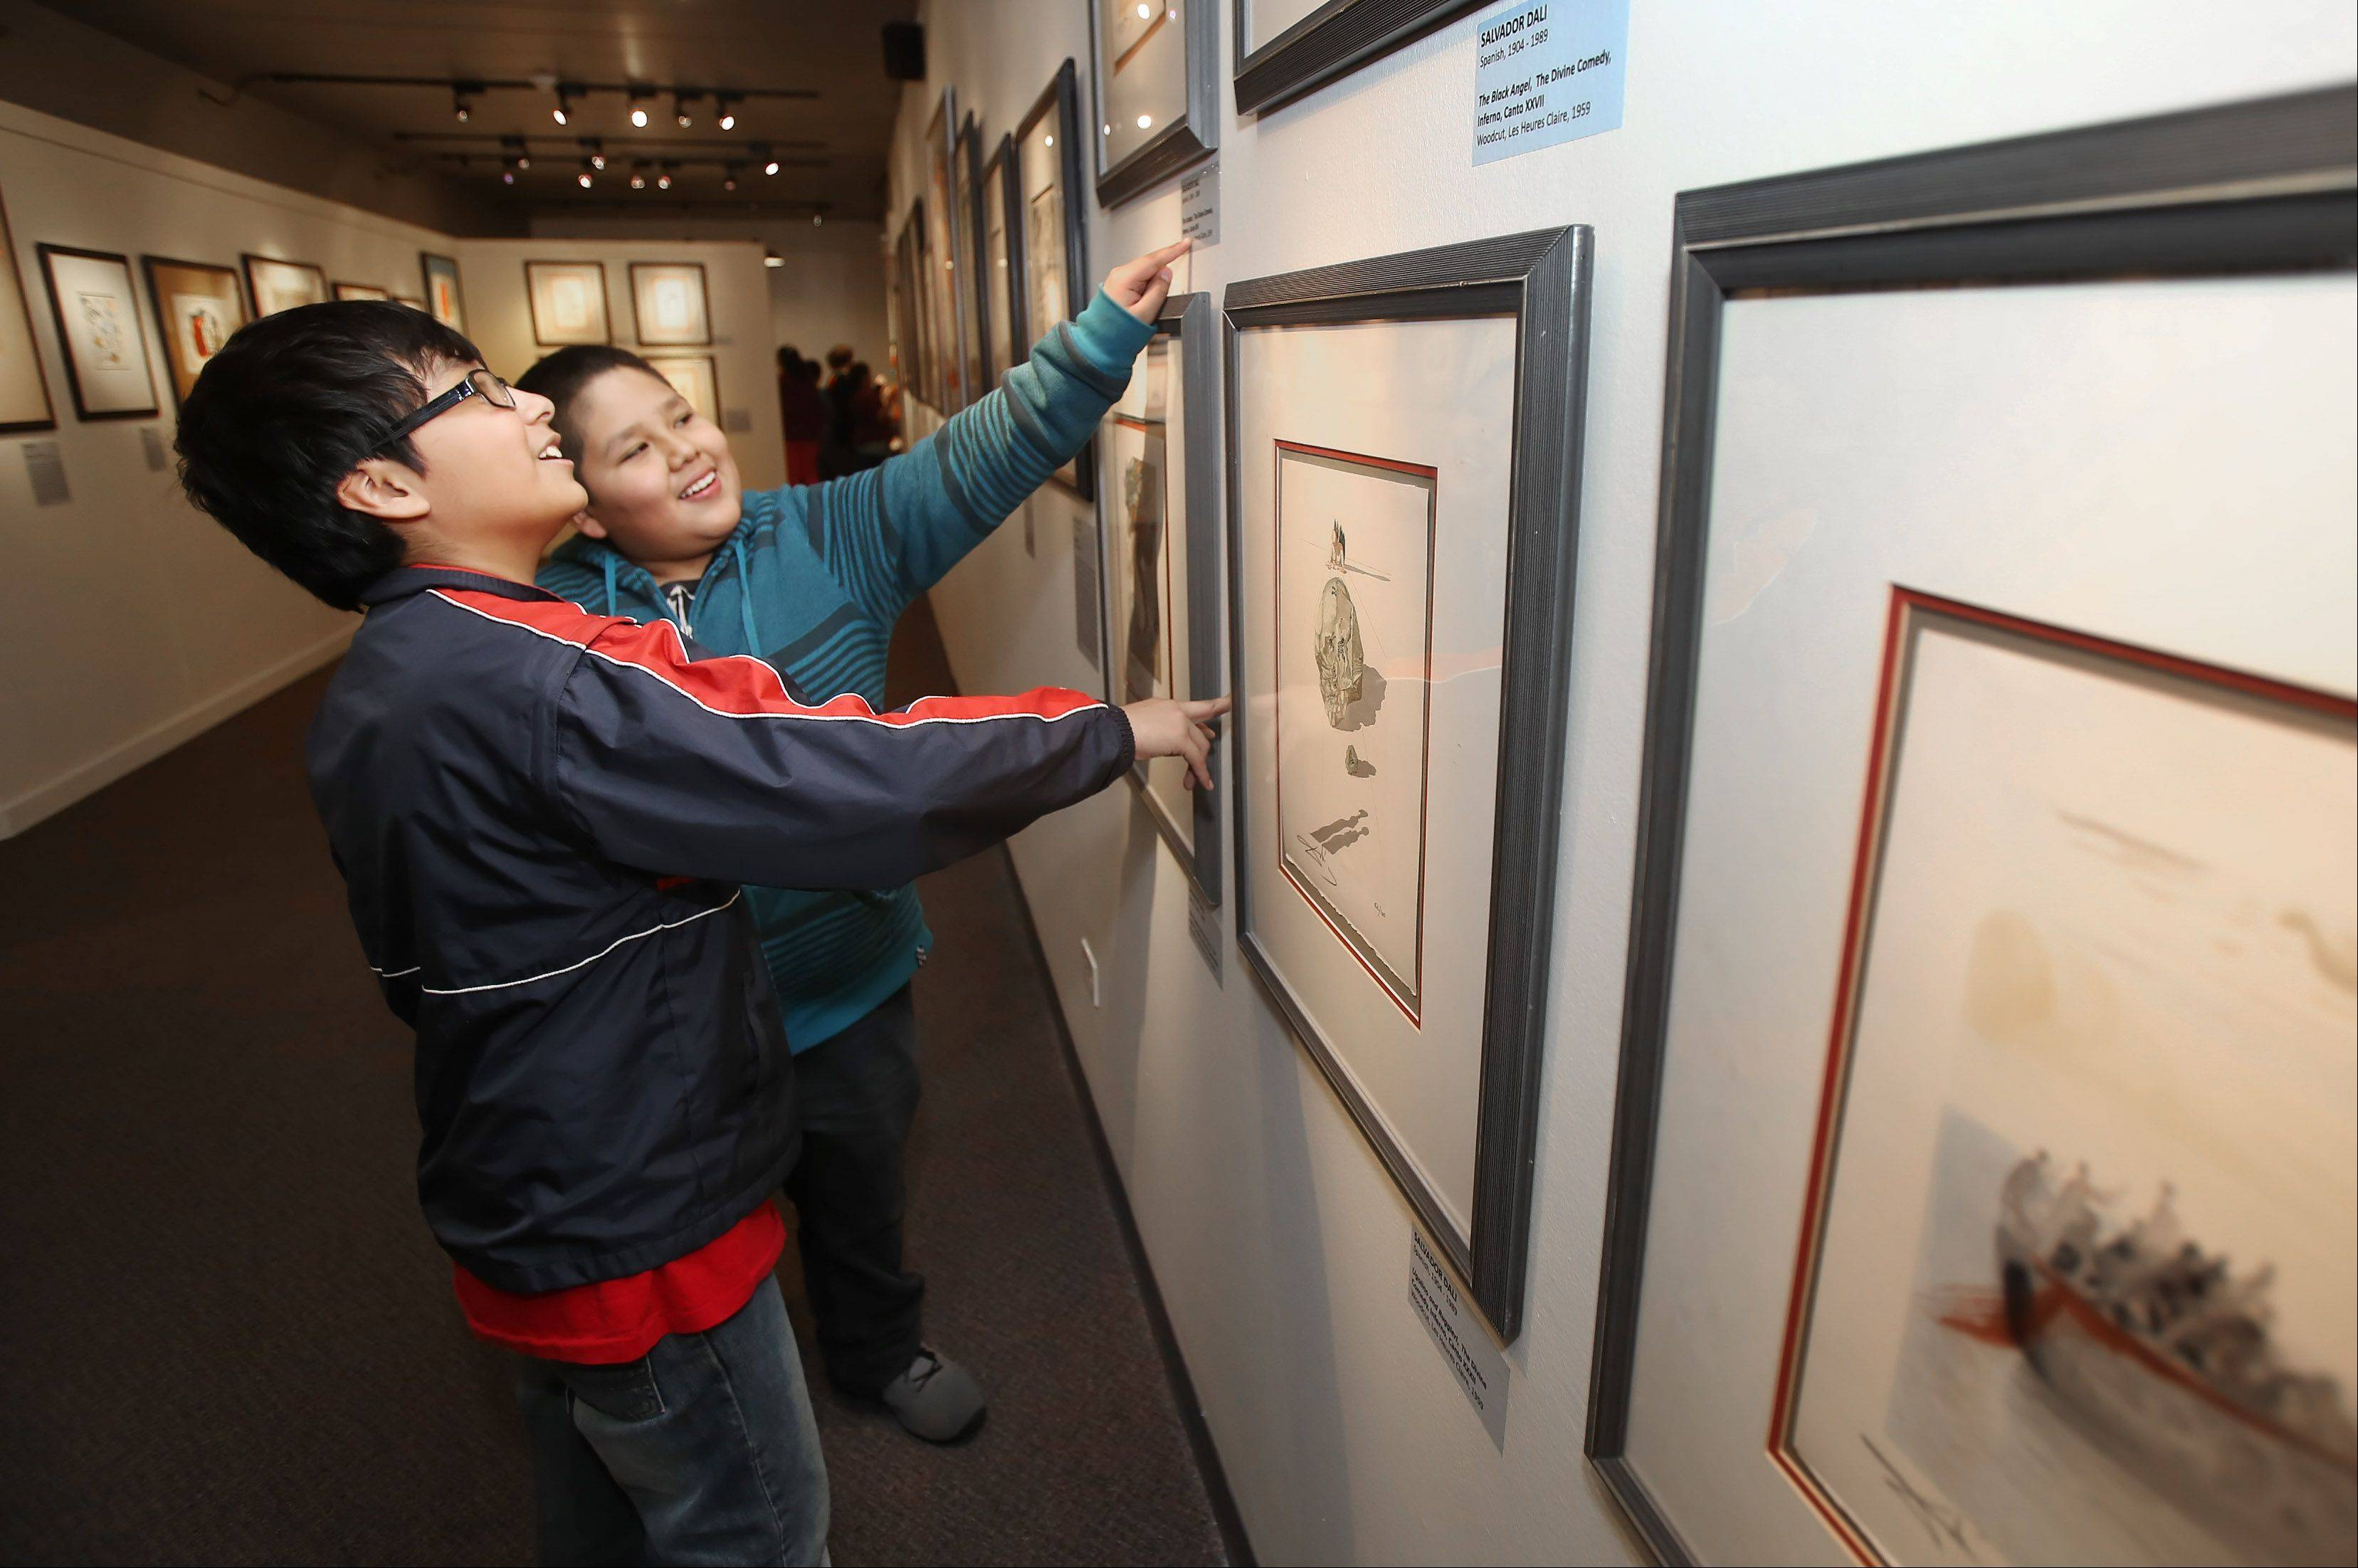 "Round Lake Middle School students Jared Mejia, left, and Ricardo Estino look at lithograghs by Salvadore Dali during the touring exhibition ""Modern Masters"" at the Discovery Museum in the Lakewood Forest Preserve near Wauconda. The works of Picasso, Dali, Miro and other greats can be seen at the show that opened April 6th."